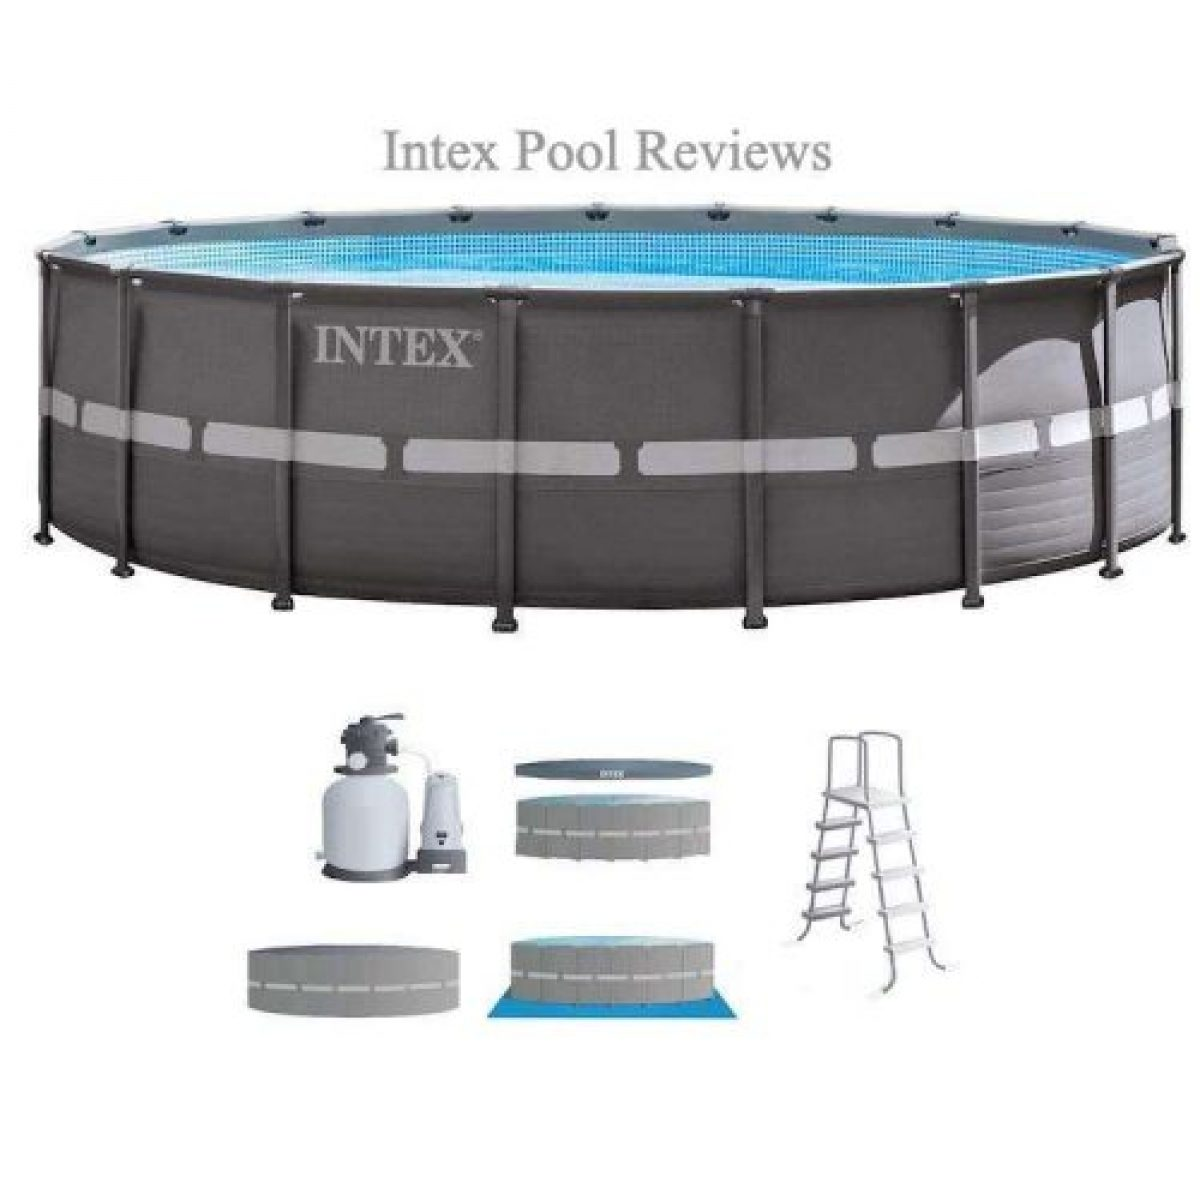 6 Best Intex Pool Reviews Comparison